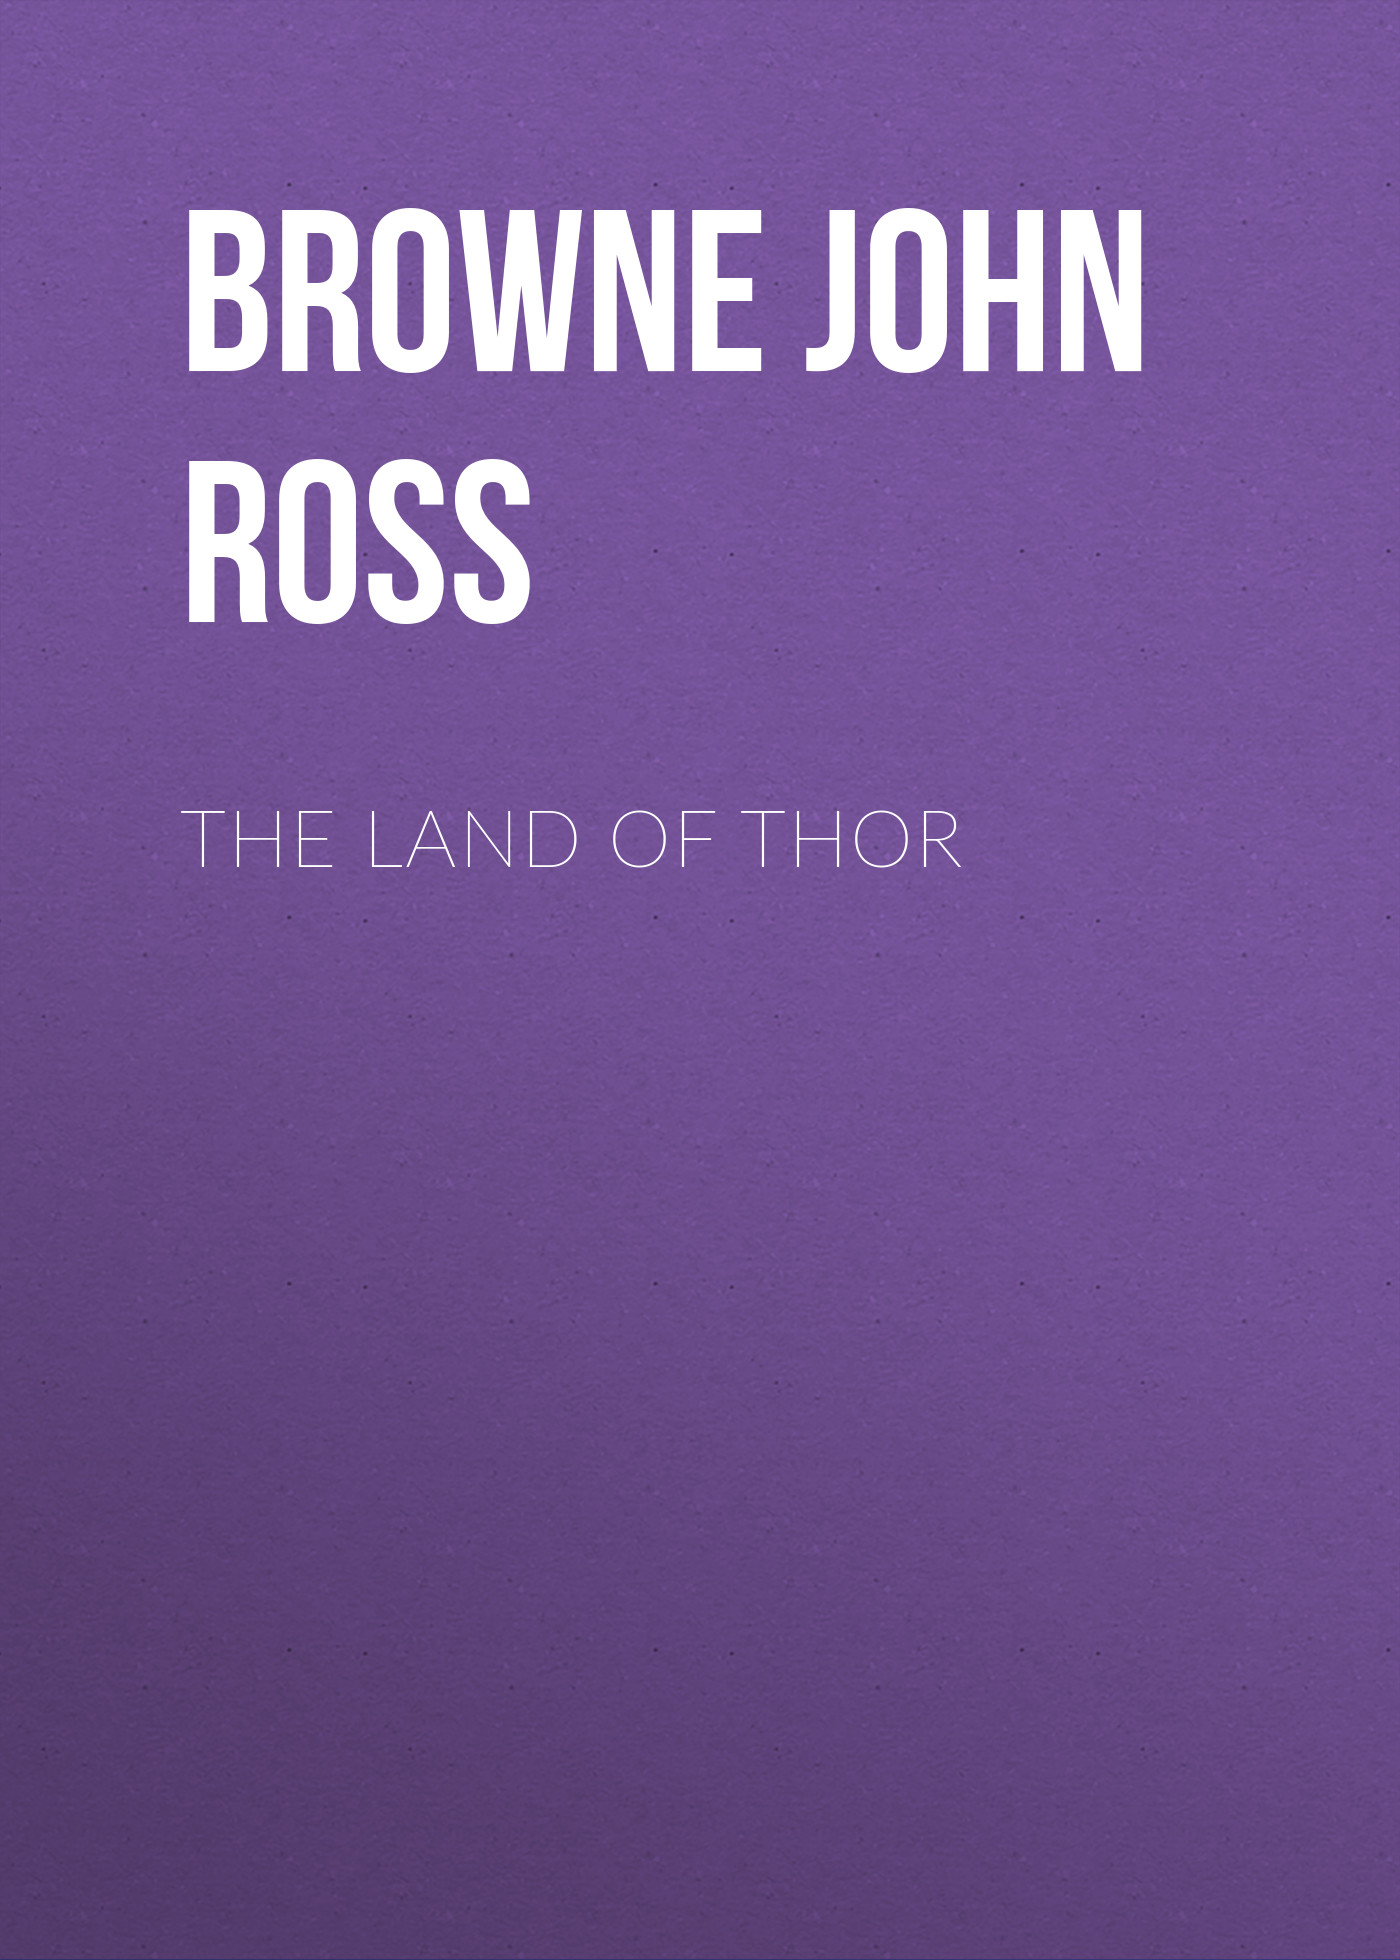 Browne John Ross The Land of Thor контактные линзы johnson